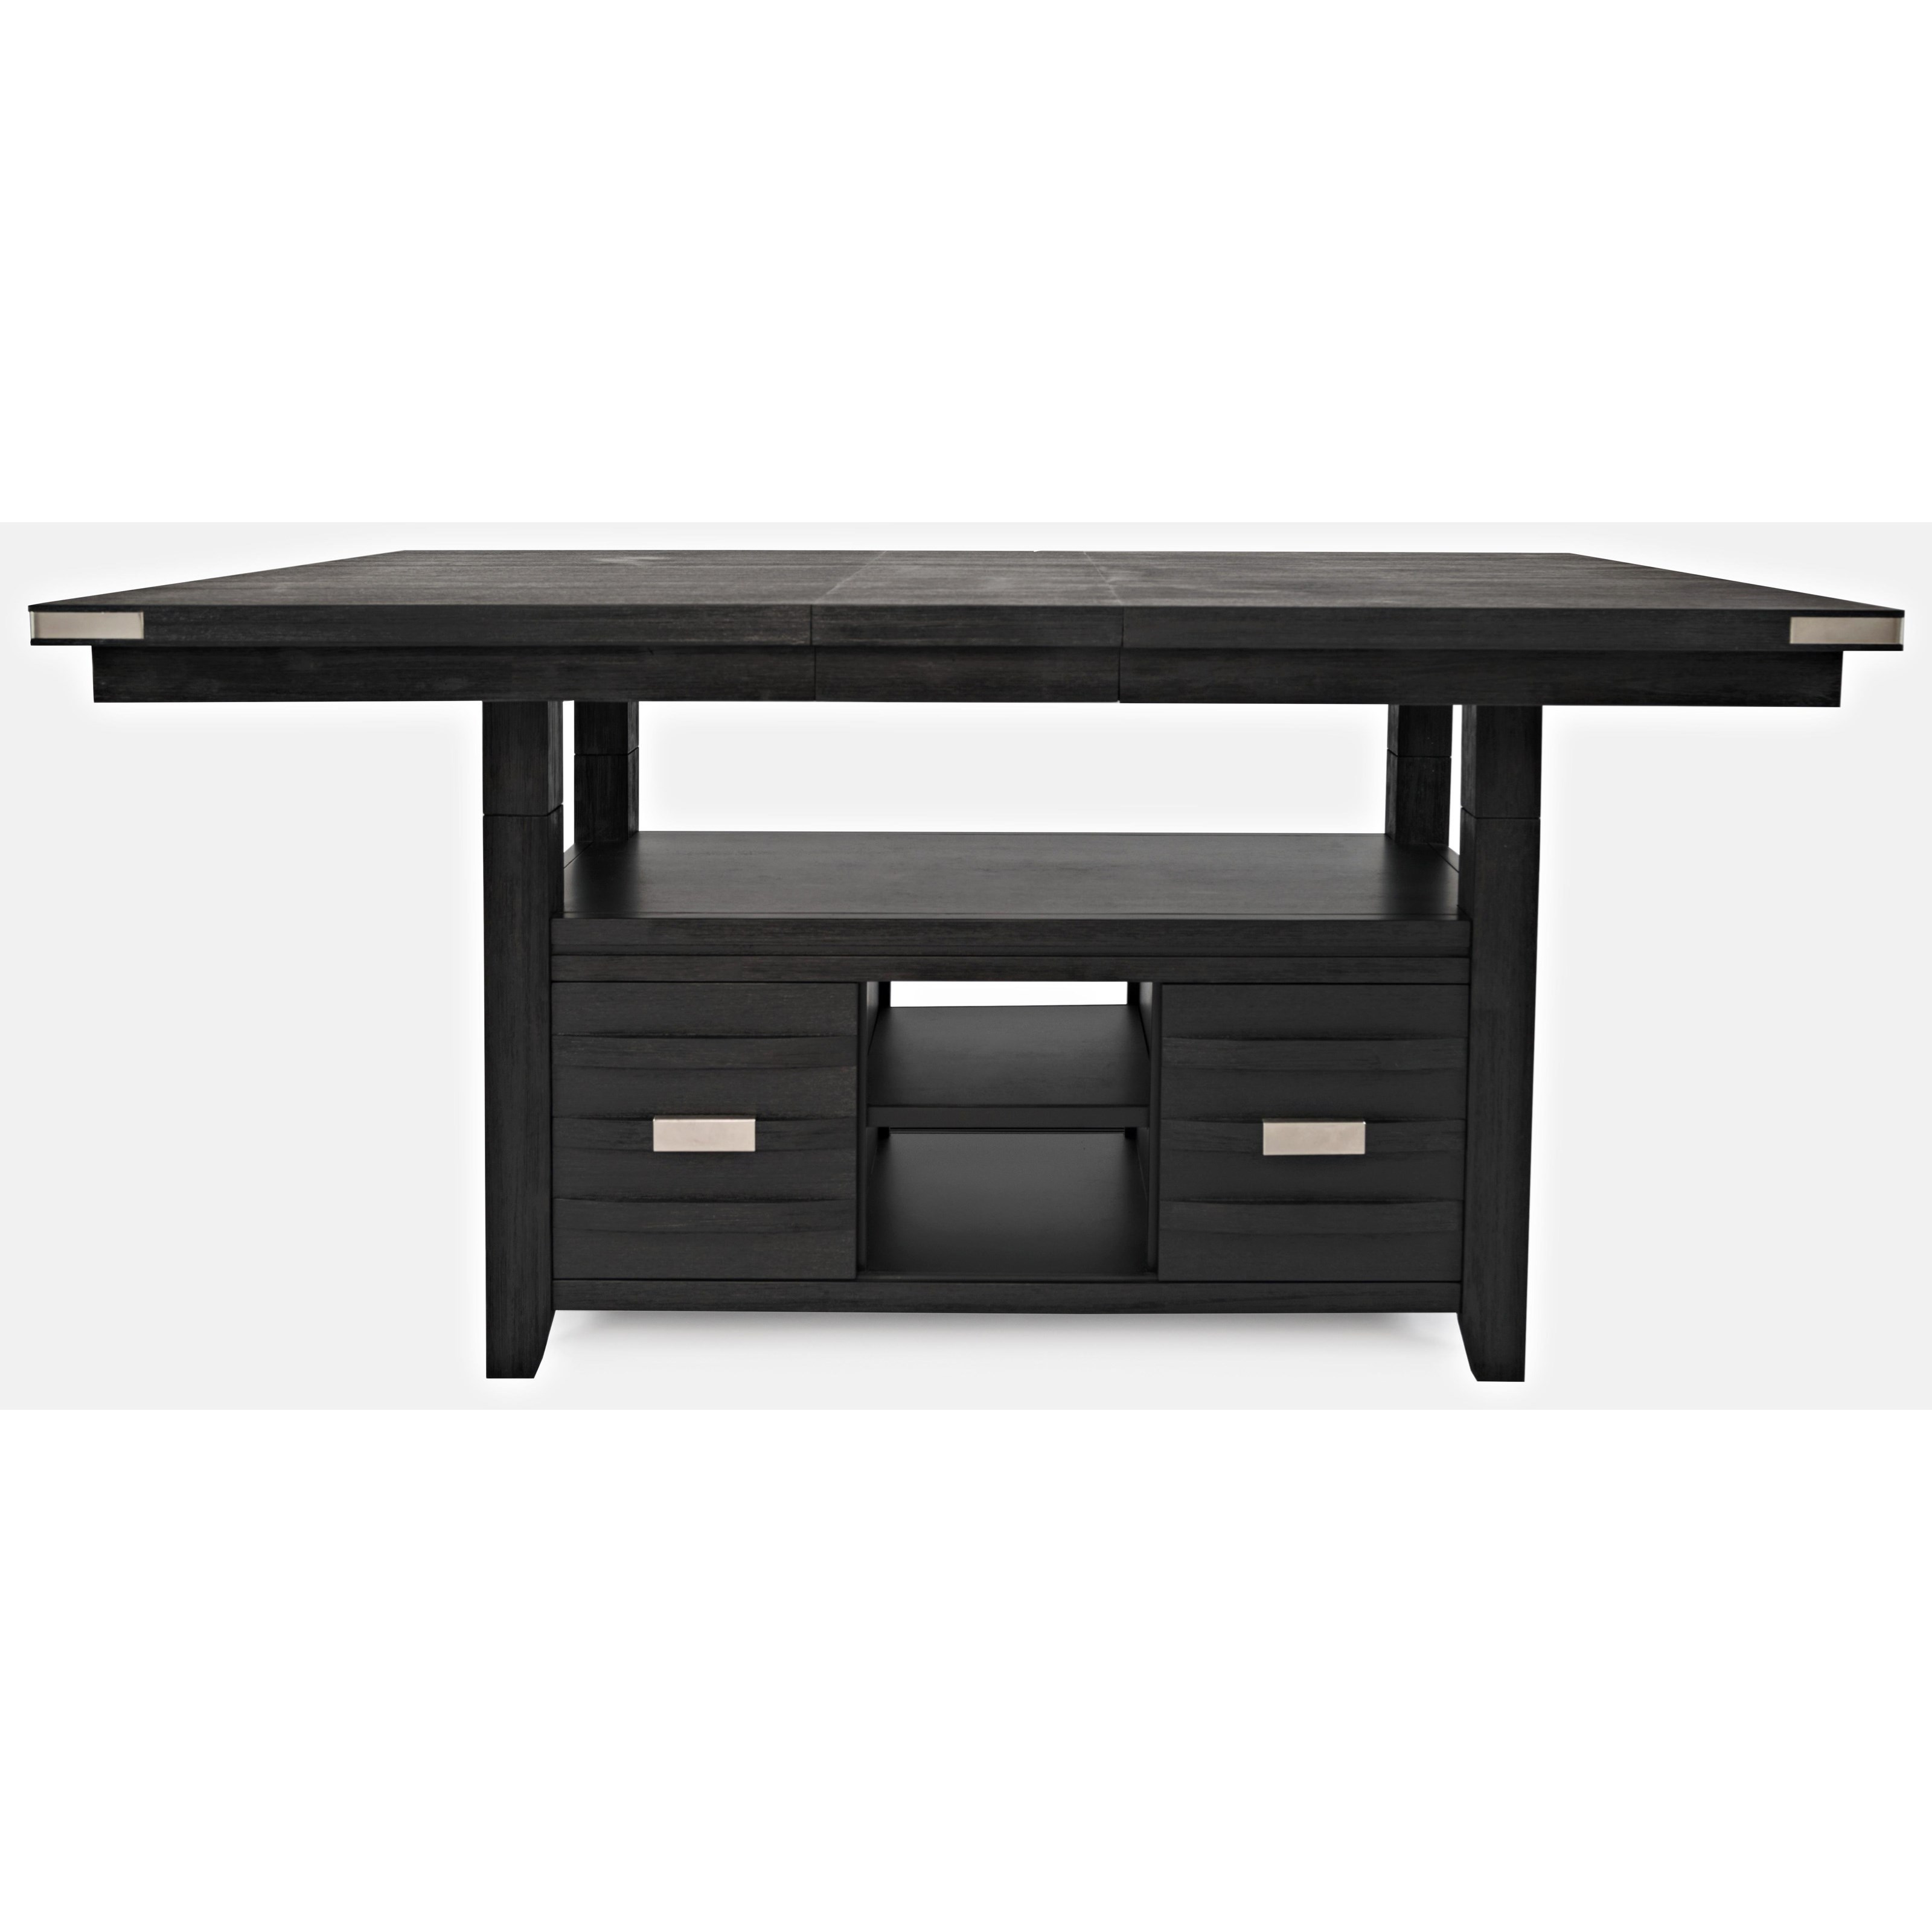 Altamonte Counter Height Dining Table by Jofran at Beck's Furniture